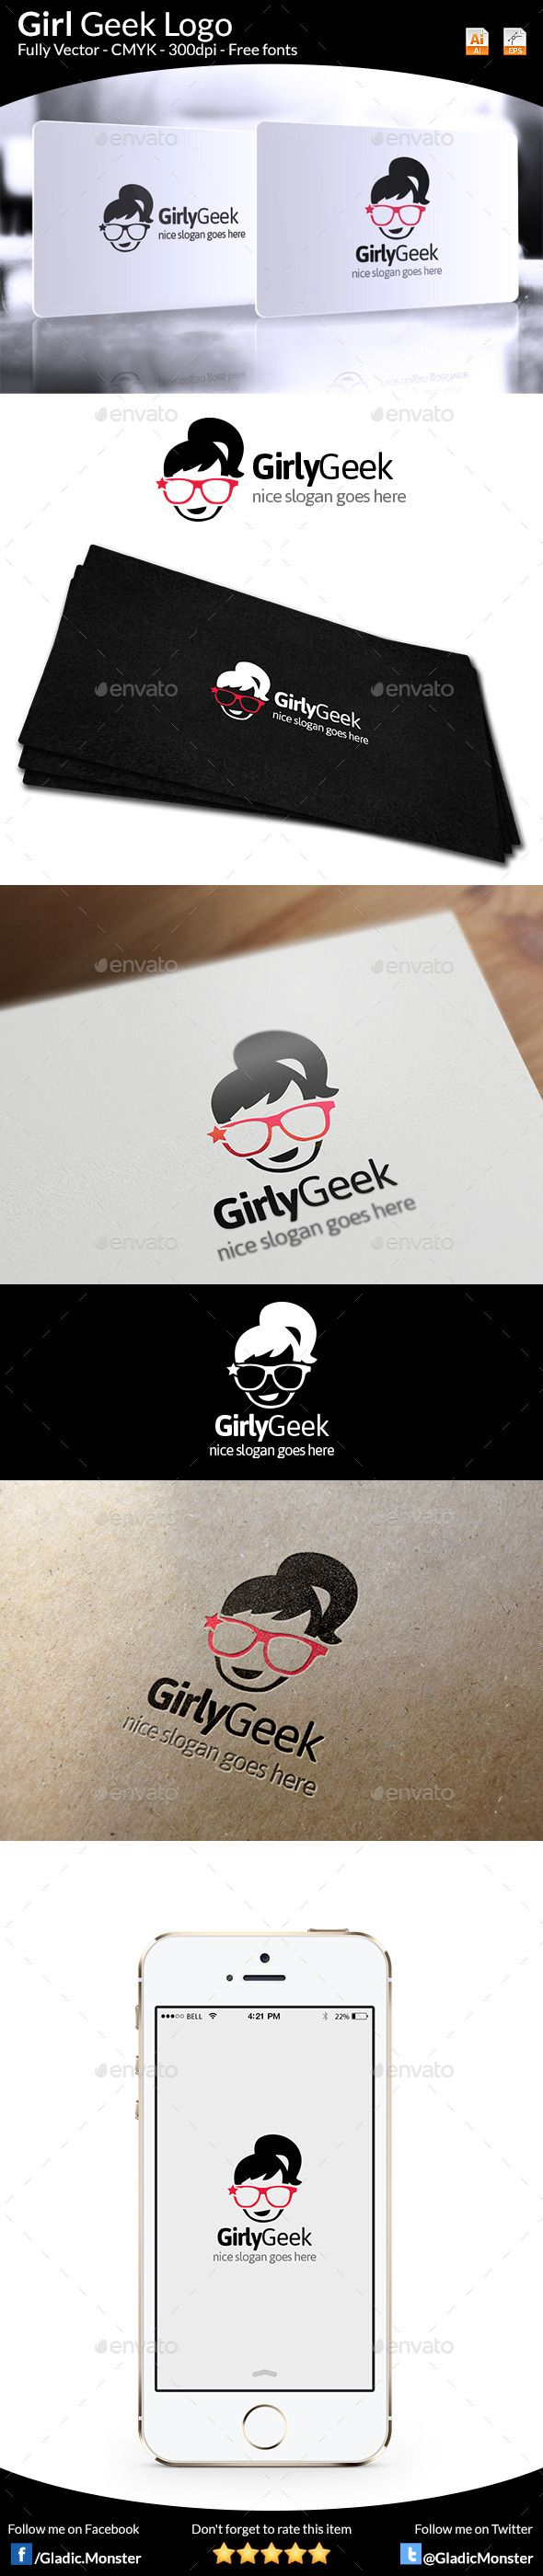 Girl Geek Logo Template Vector EPS, AI Illustrator. Download here ...